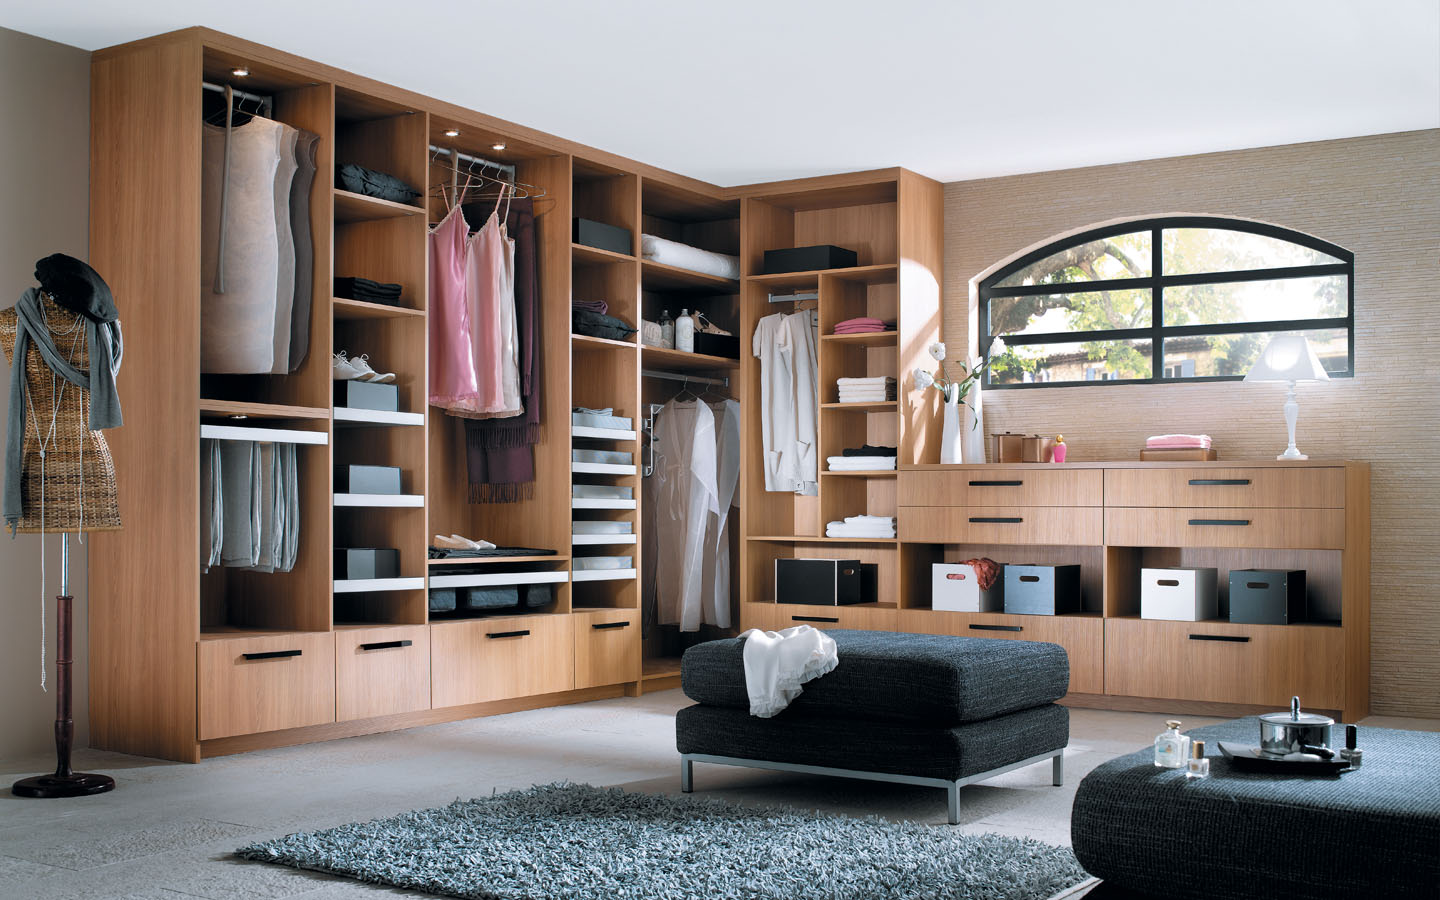 magasin dressing finest celio with magasin dressing great meubles en bois magasin ou dressing. Black Bedroom Furniture Sets. Home Design Ideas